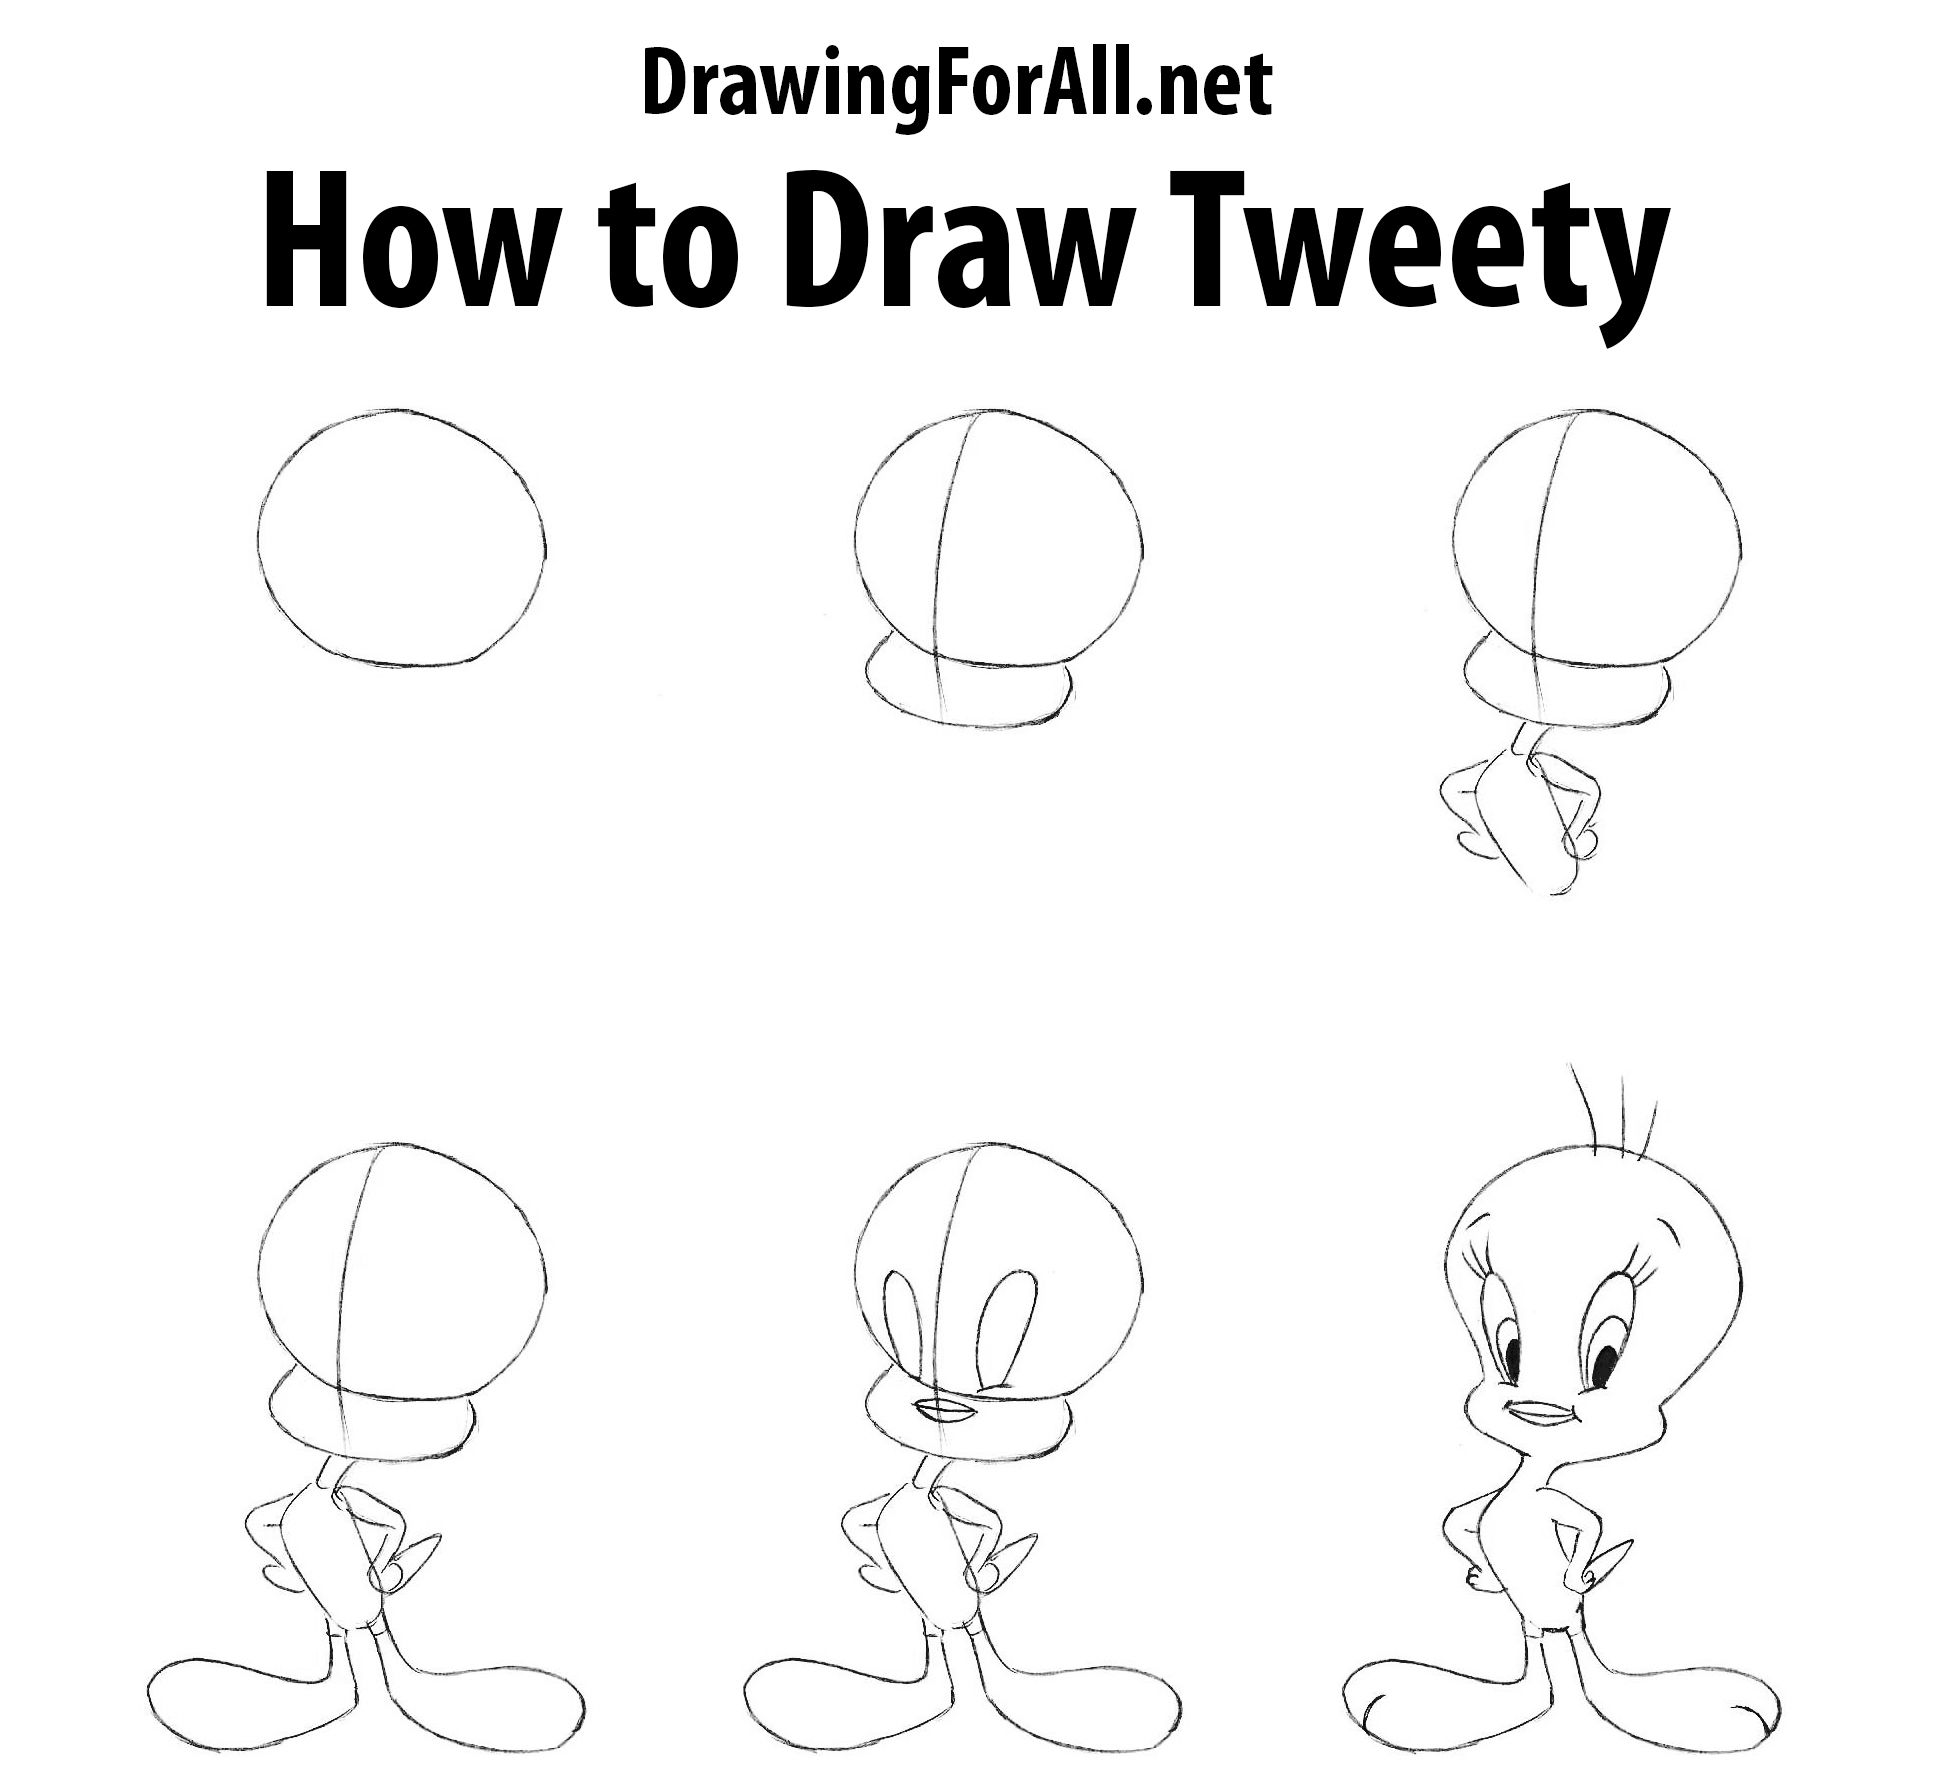 How To Draw Tweety Drawings Bugs Drawing Drawing Cartoon Characters